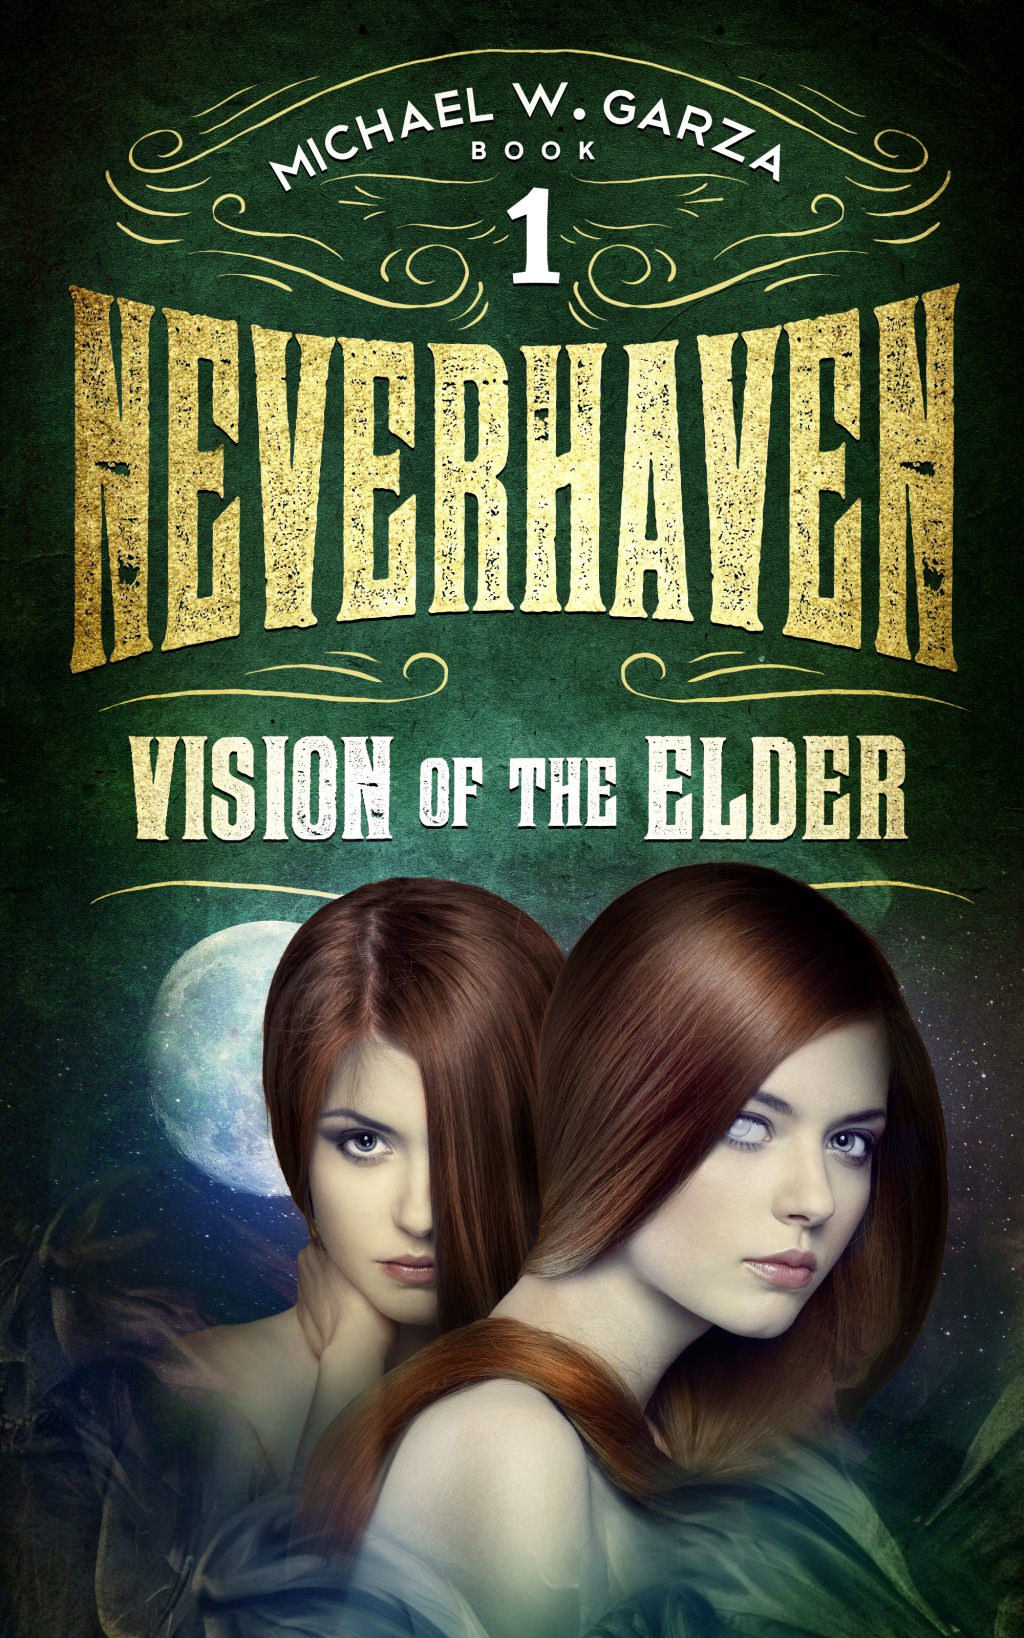 NeverHaven (Vision of the Elder #1) by Michael W. Garza